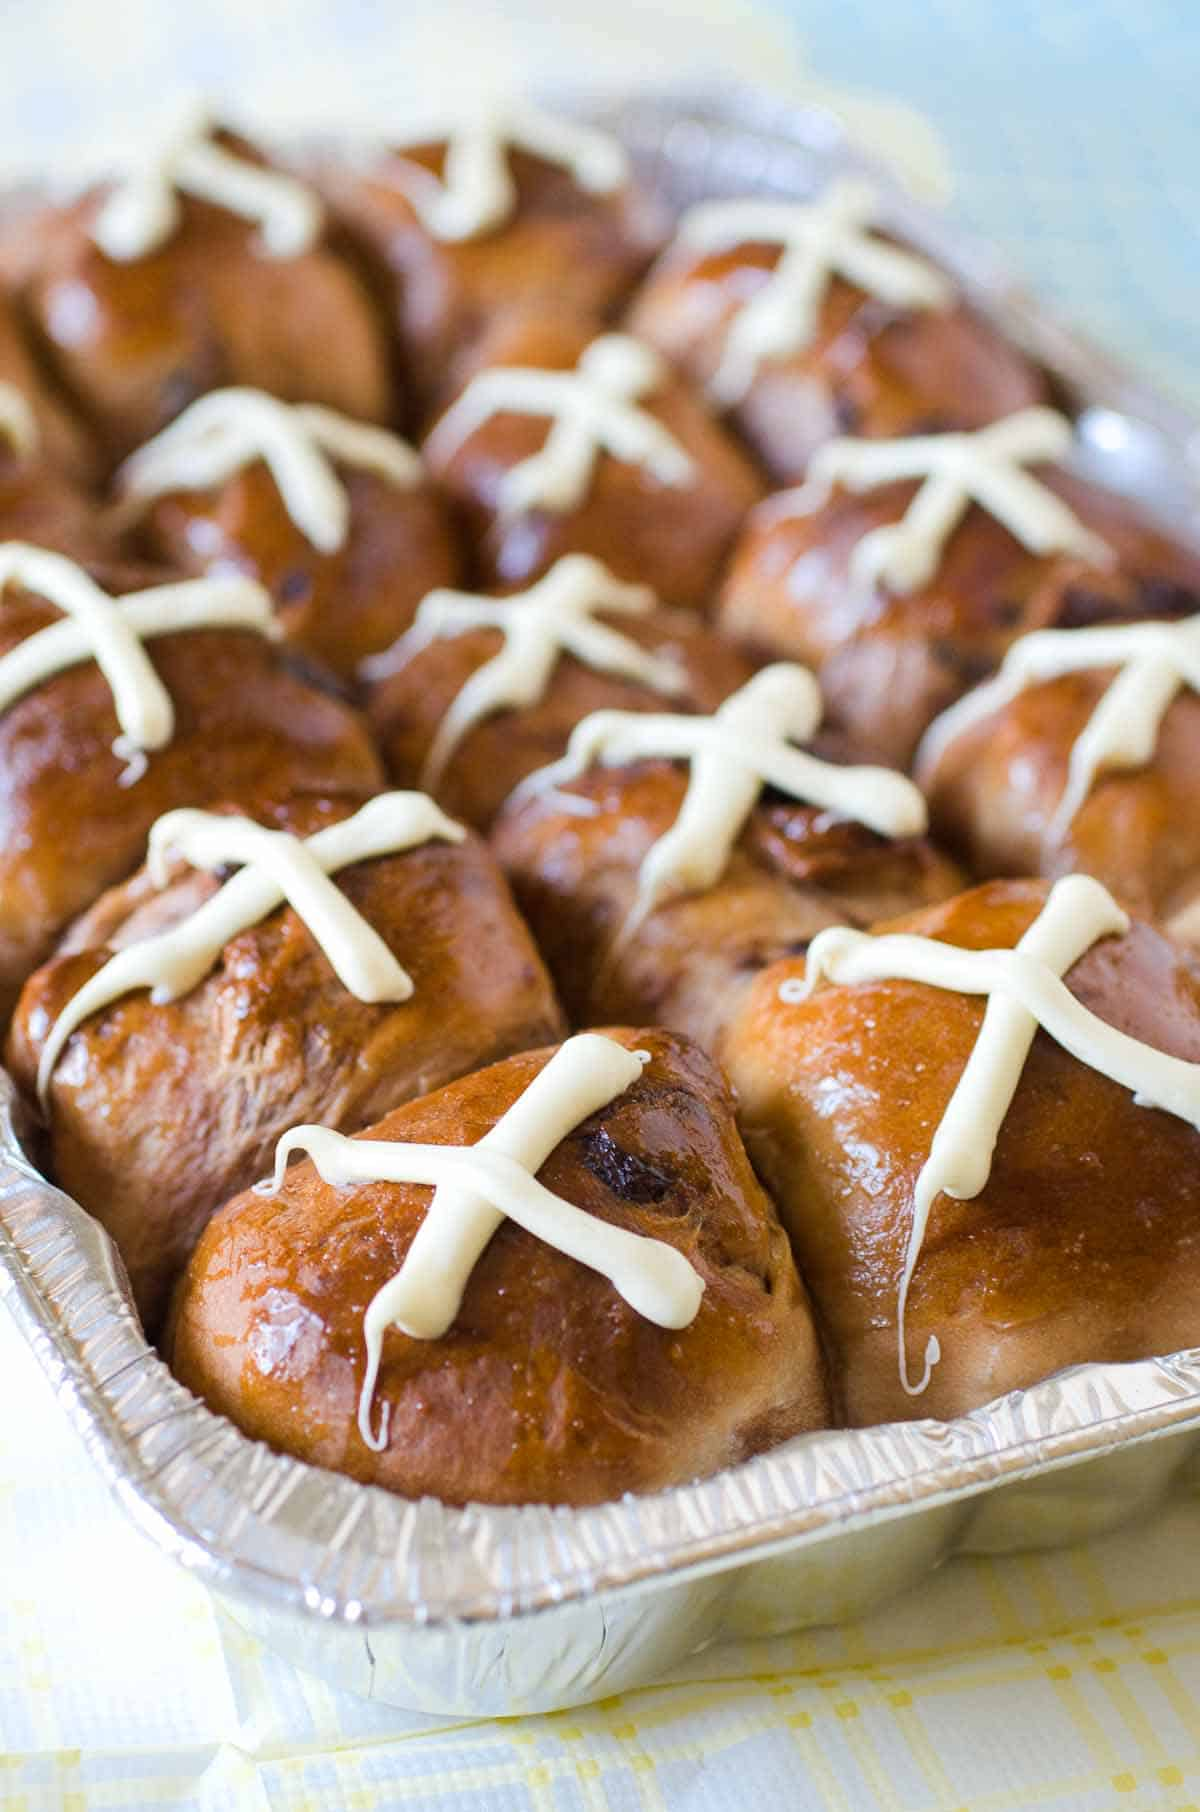 a pan of hot cross buns with white chocolate cross on top